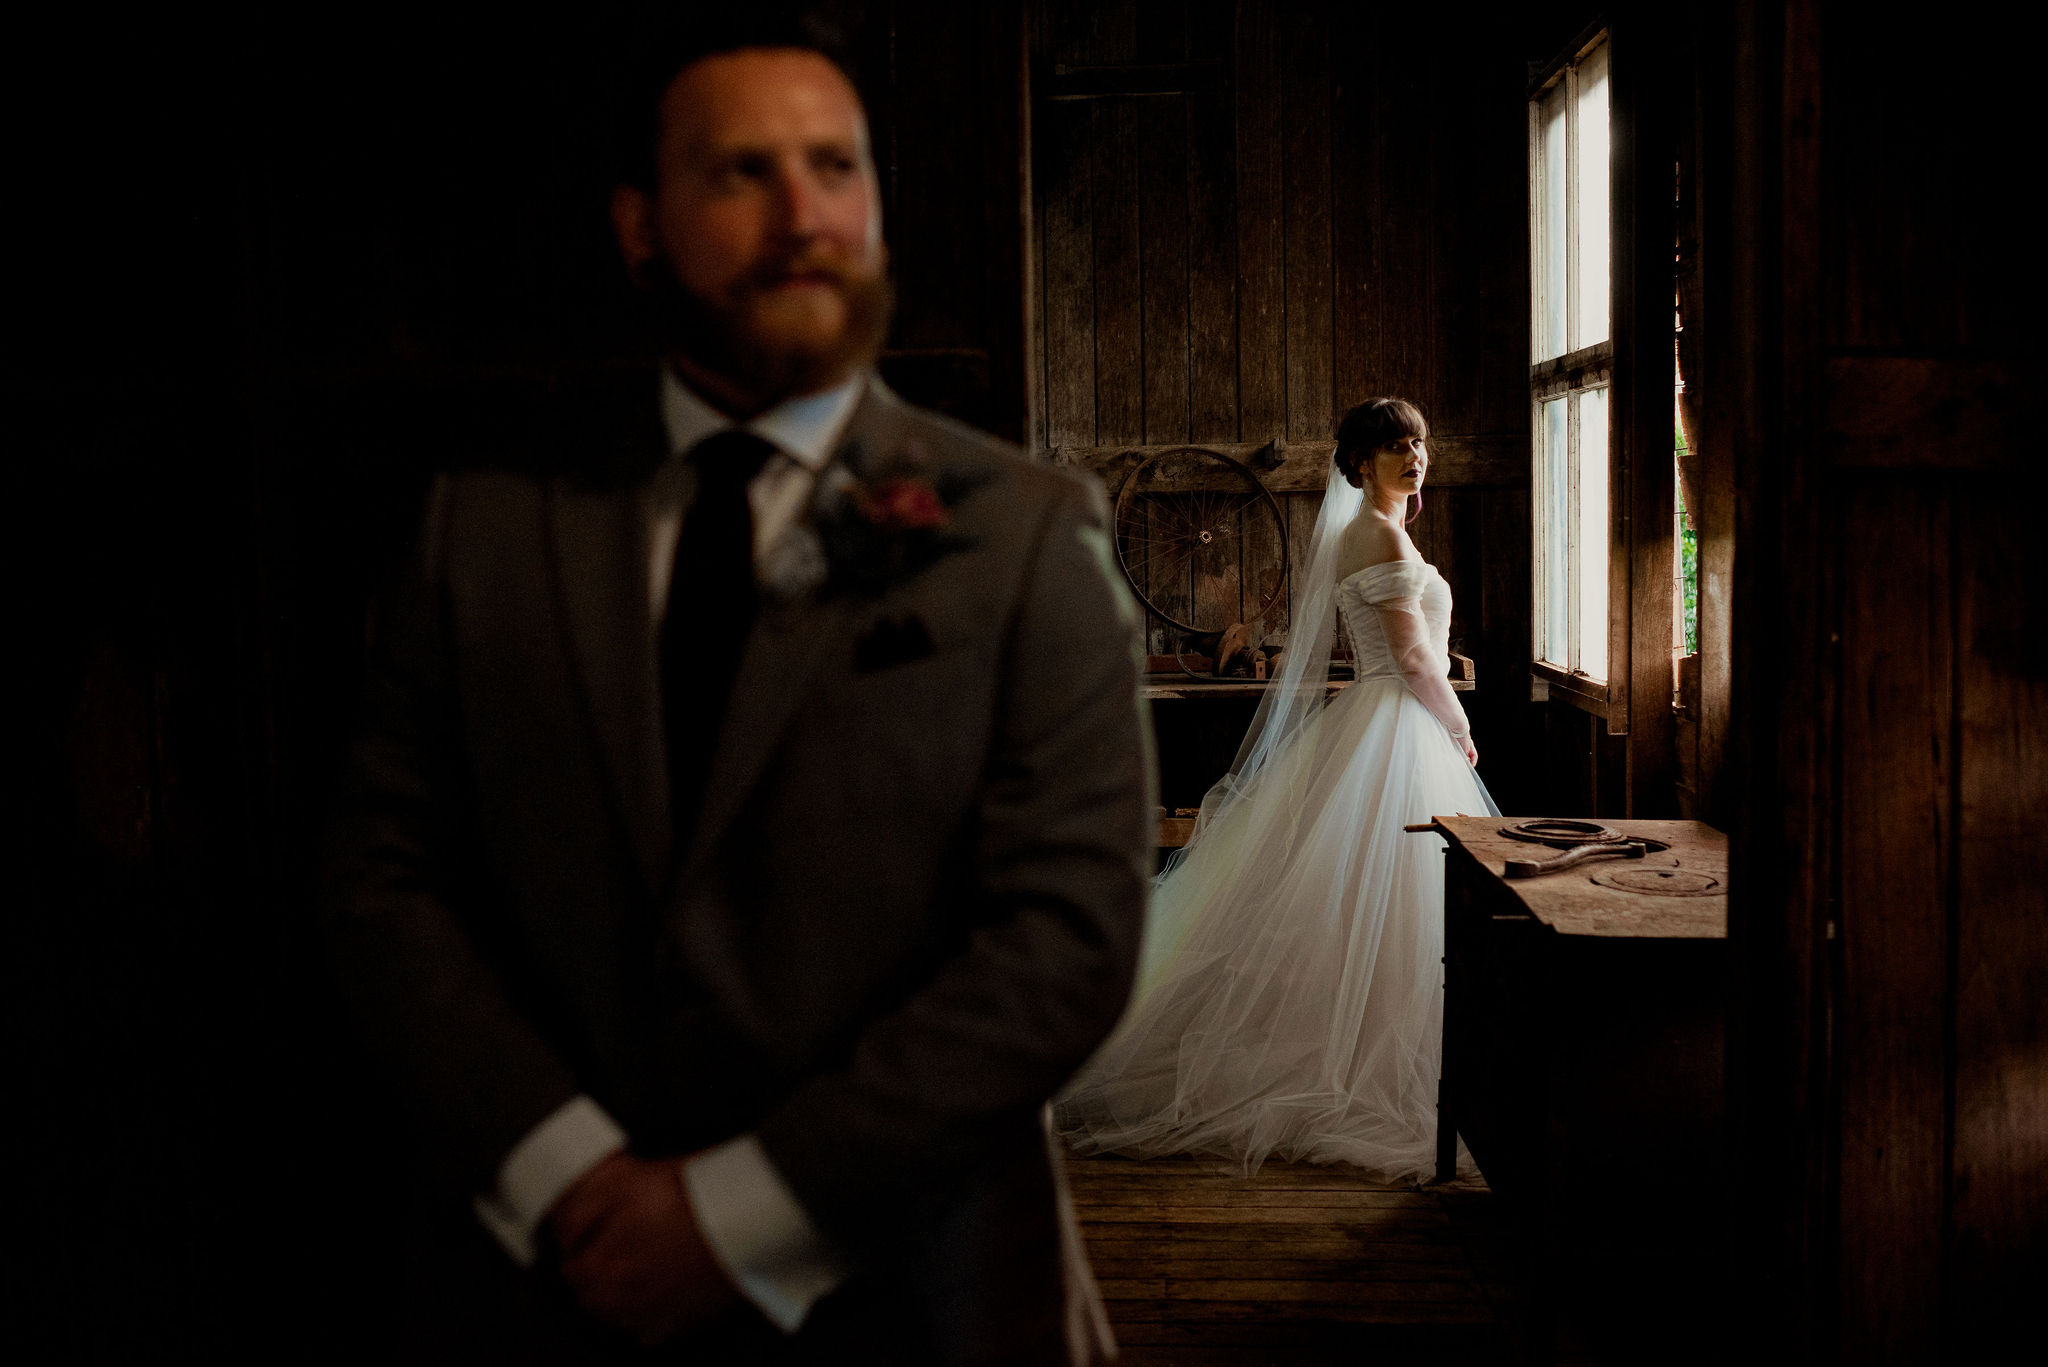 Bride and groom posing in different rooms in a rustic wooden workshop